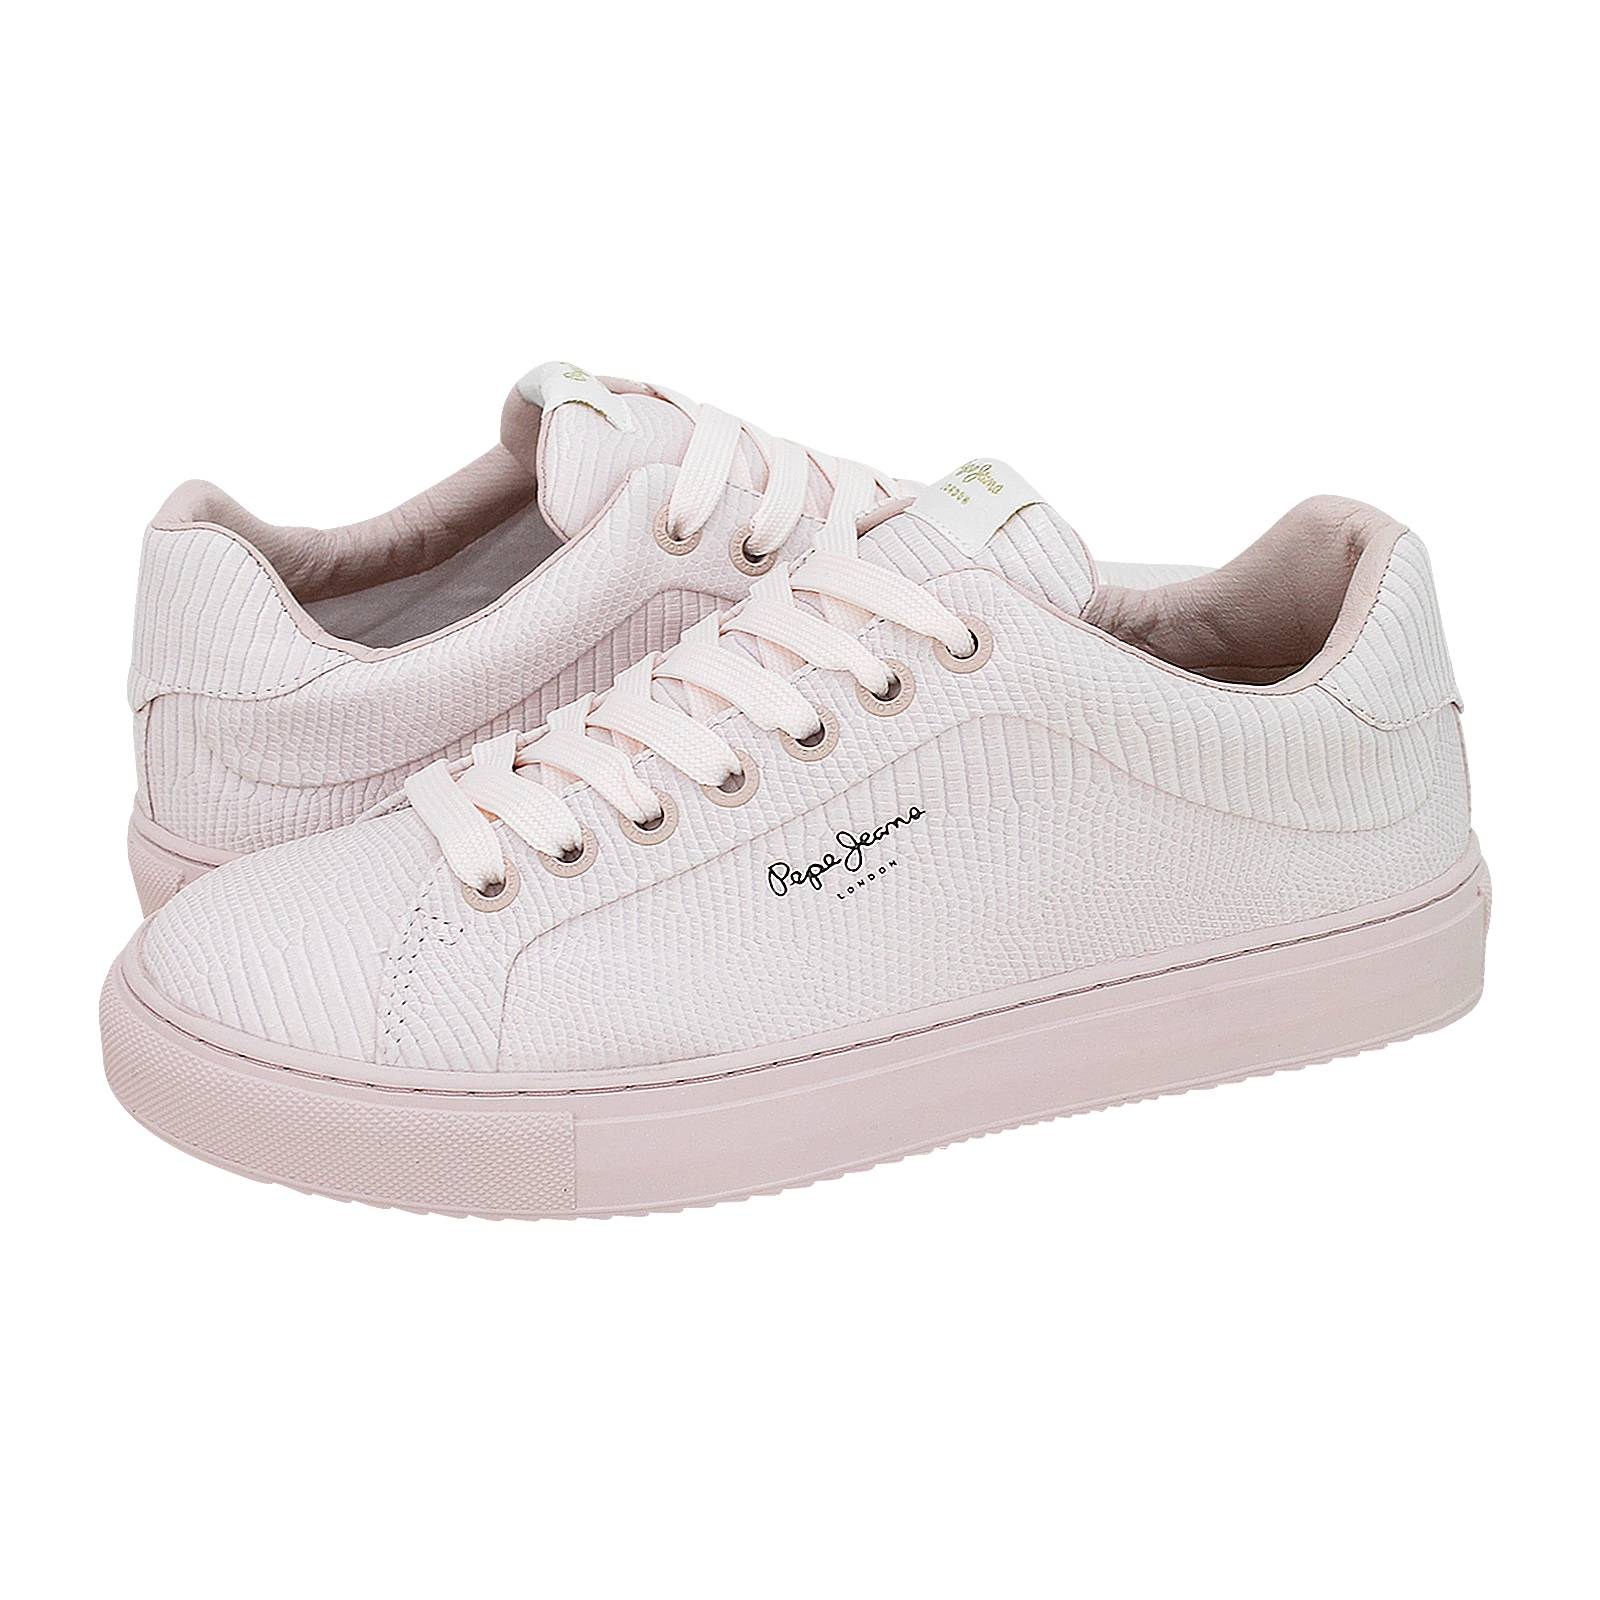 0f5e6698adf Adams Dully - Pepe Jeans Women's casual shoes made of synthetic ...